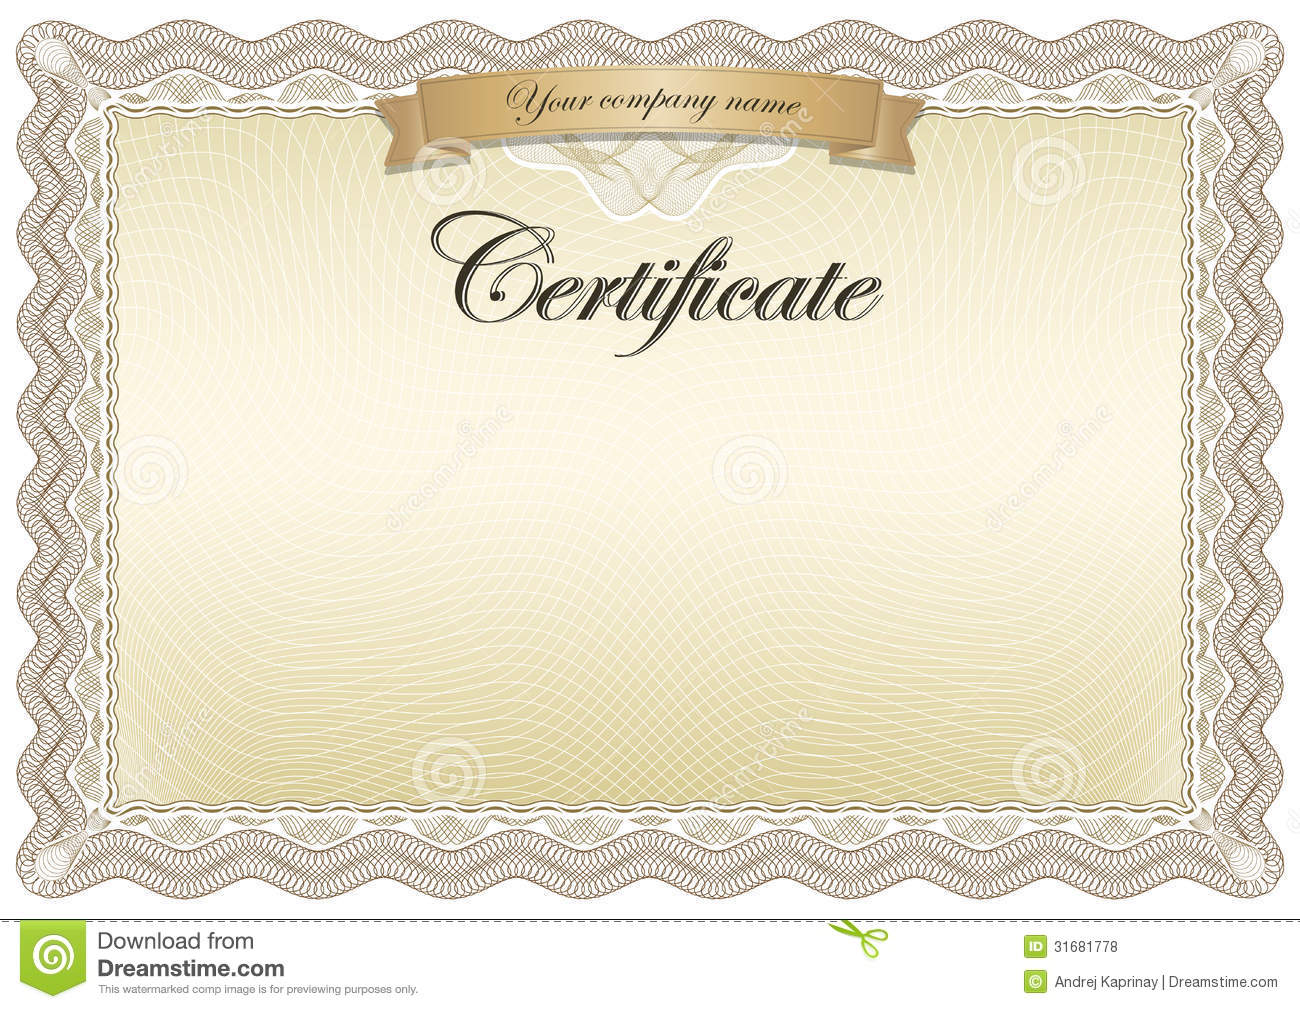 Certificate Brown Royalty Free Stock Photos Image 31681778